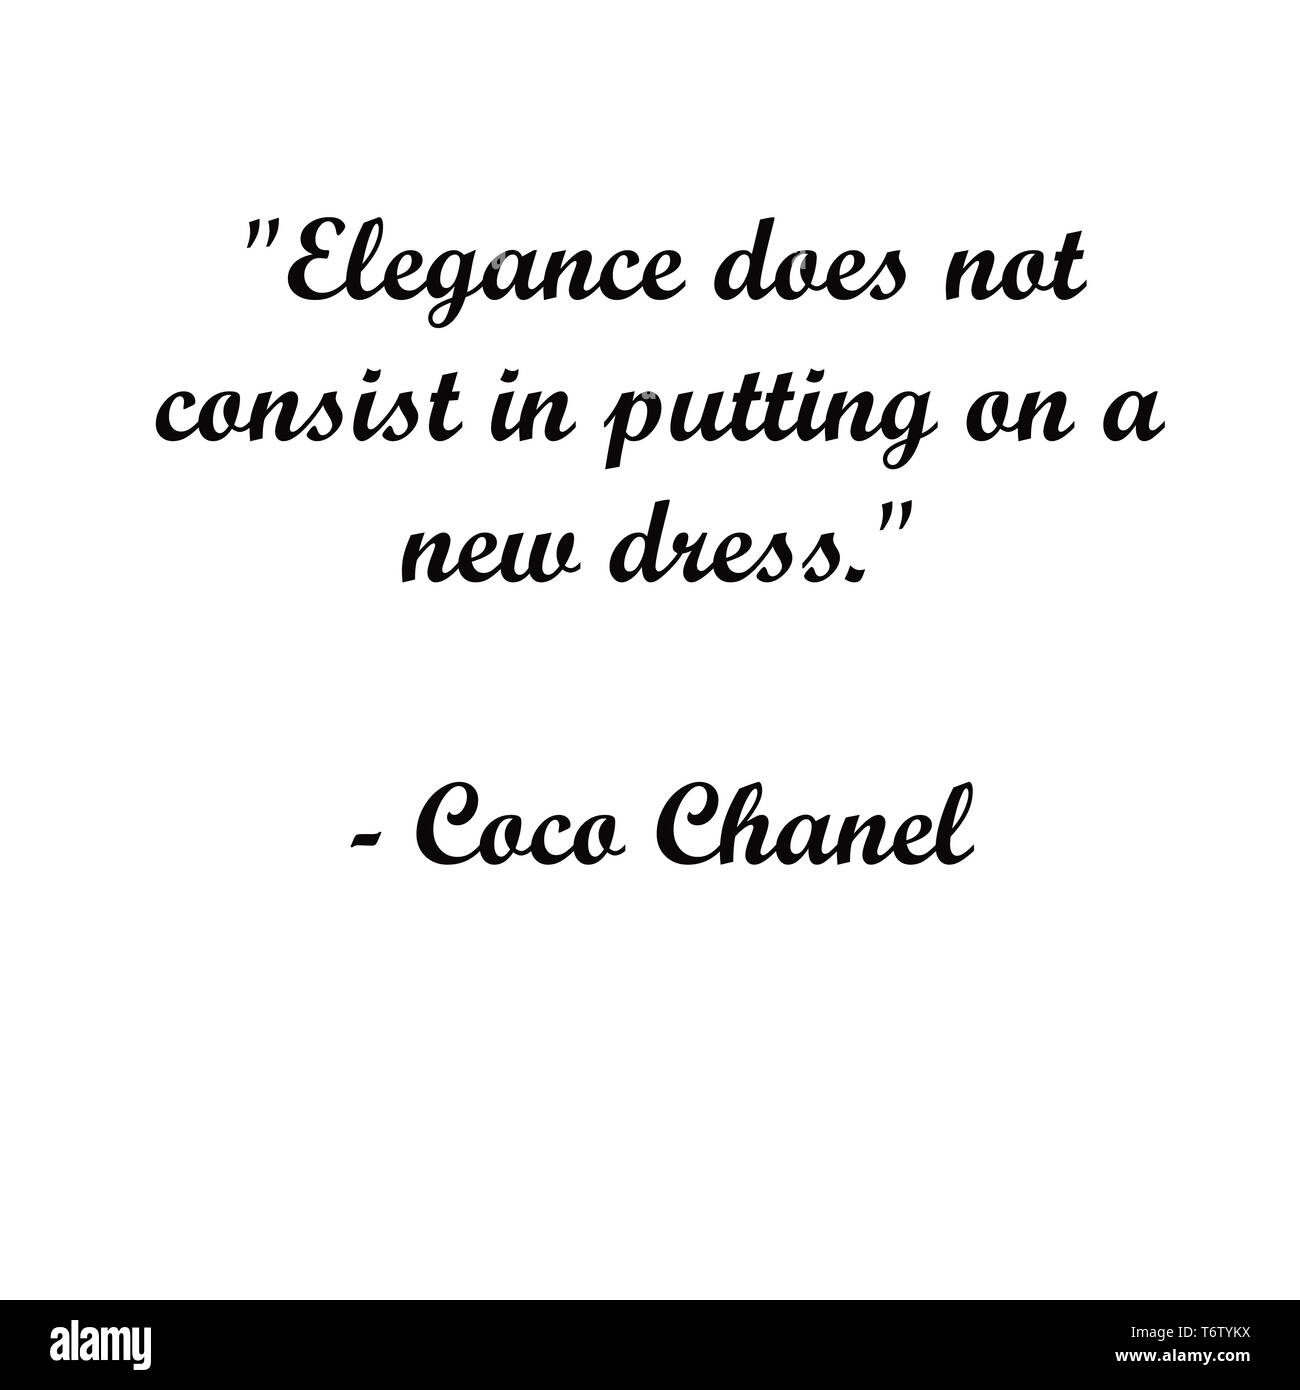 Inspirational Coco Chanel Quotes Modern Typography For